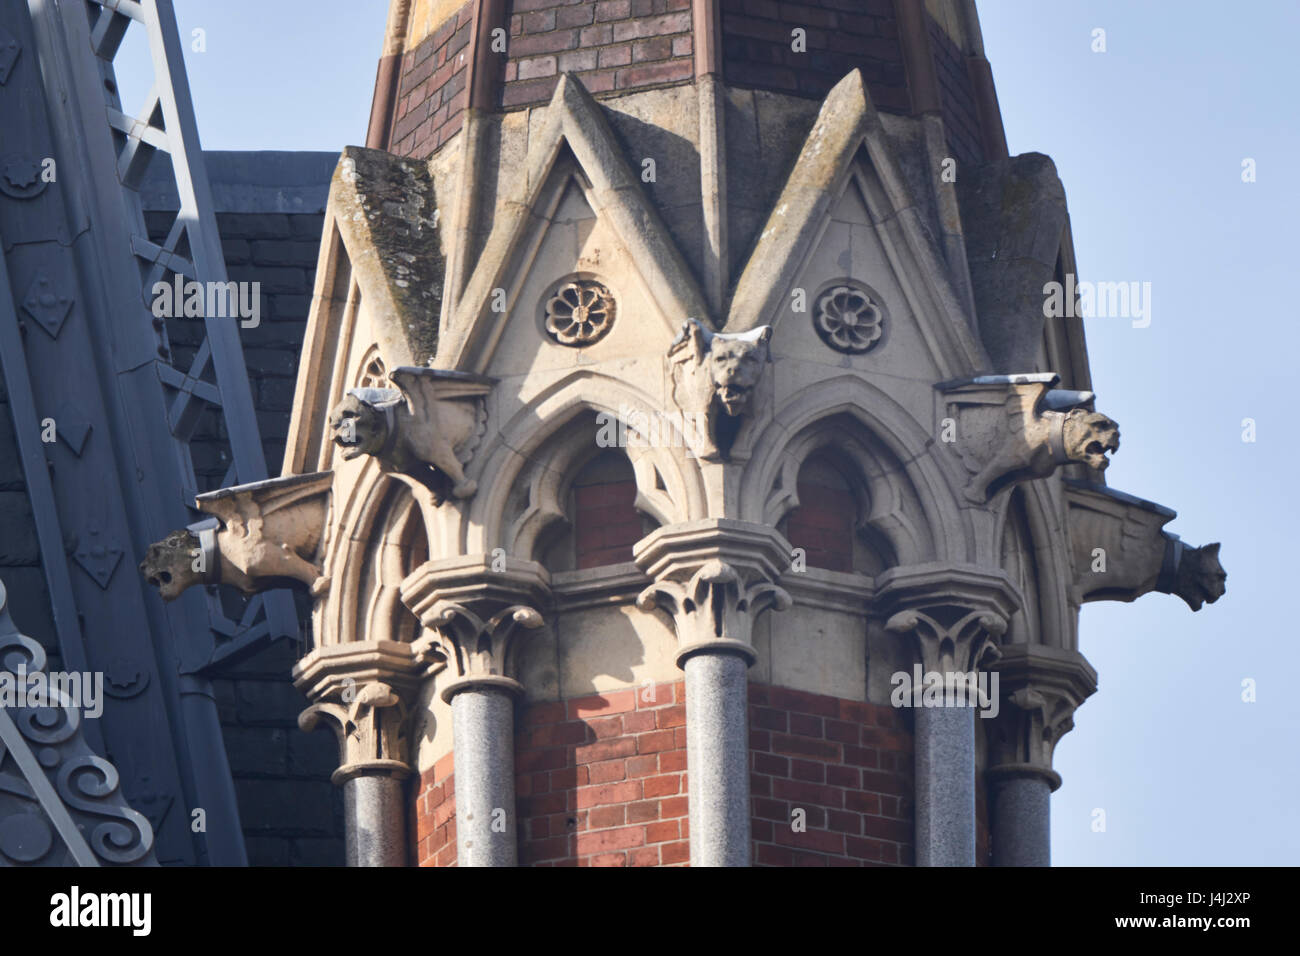 Detail of pinnacle on the clock tower, Midland Grand Hotel at St Pancras Station, London. With marble shafts, stone - Stock Image